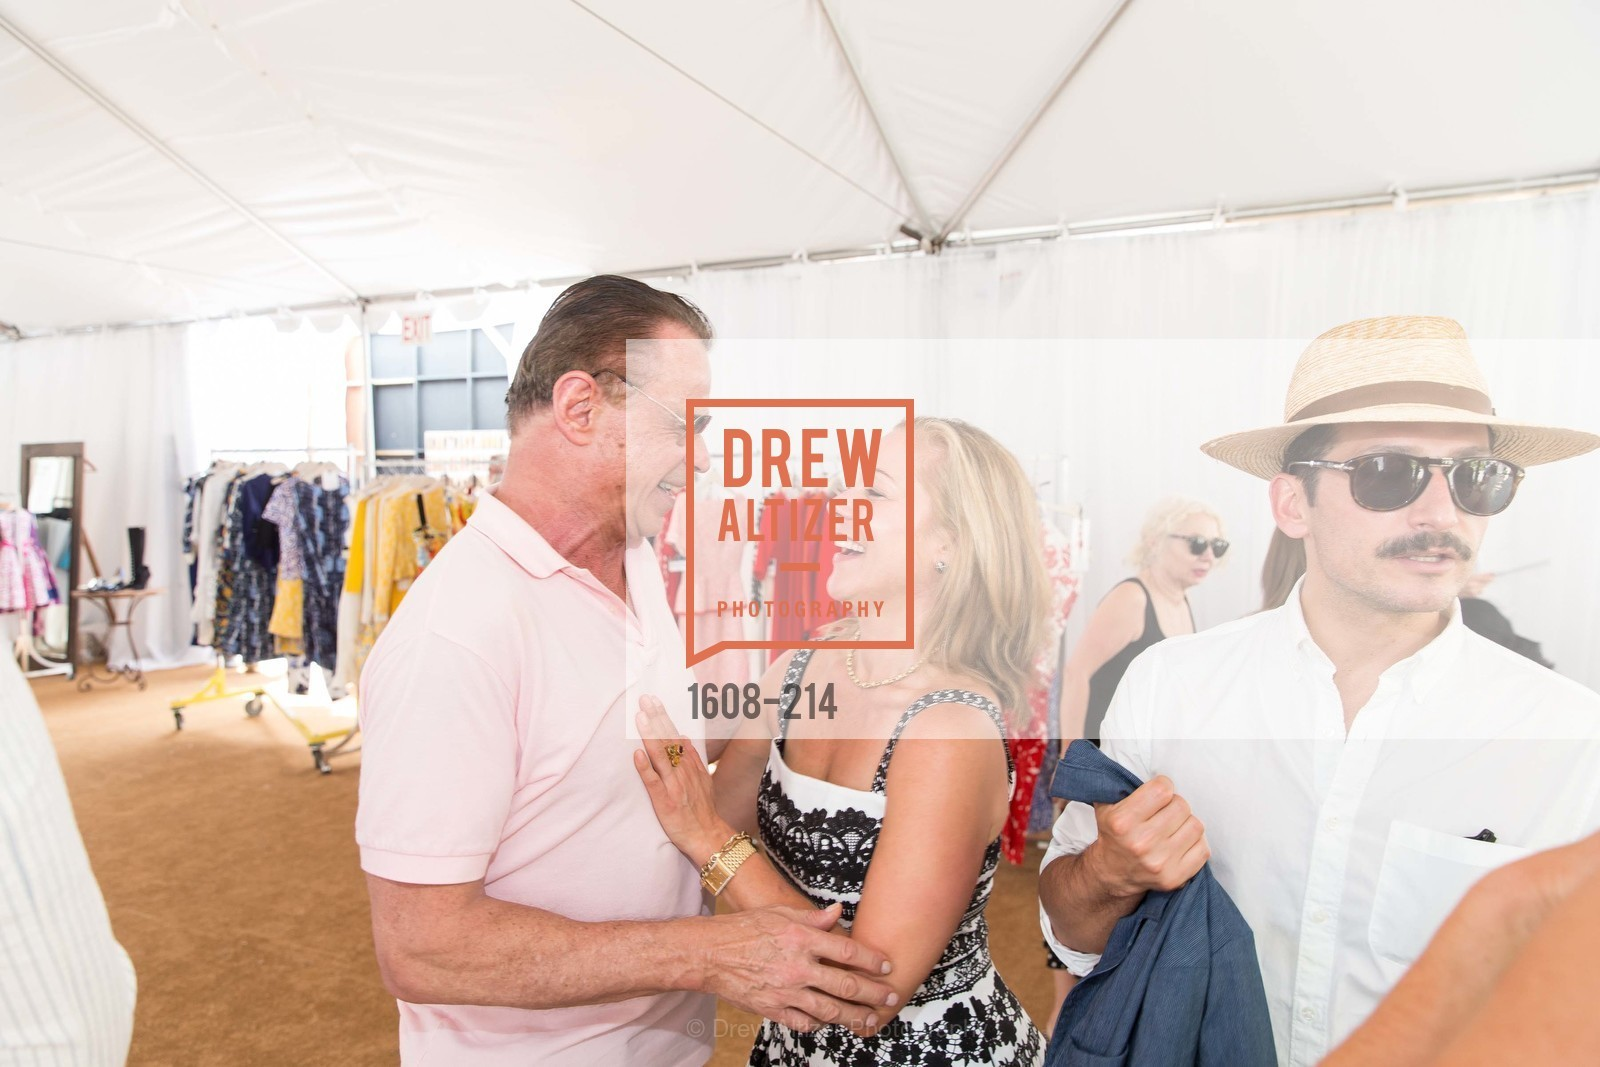 Boaz Mazor, Darayn Hickingbotham, Rambert Rigoud, Saks Fifth Avenue and The League to Save Lake Tahoe Present Fashion on the Lake, Private Residence, August 1st, 2015,Drew Altizer, Drew Altizer Photography, full-service event agency, private events, San Francisco photographer, photographer California